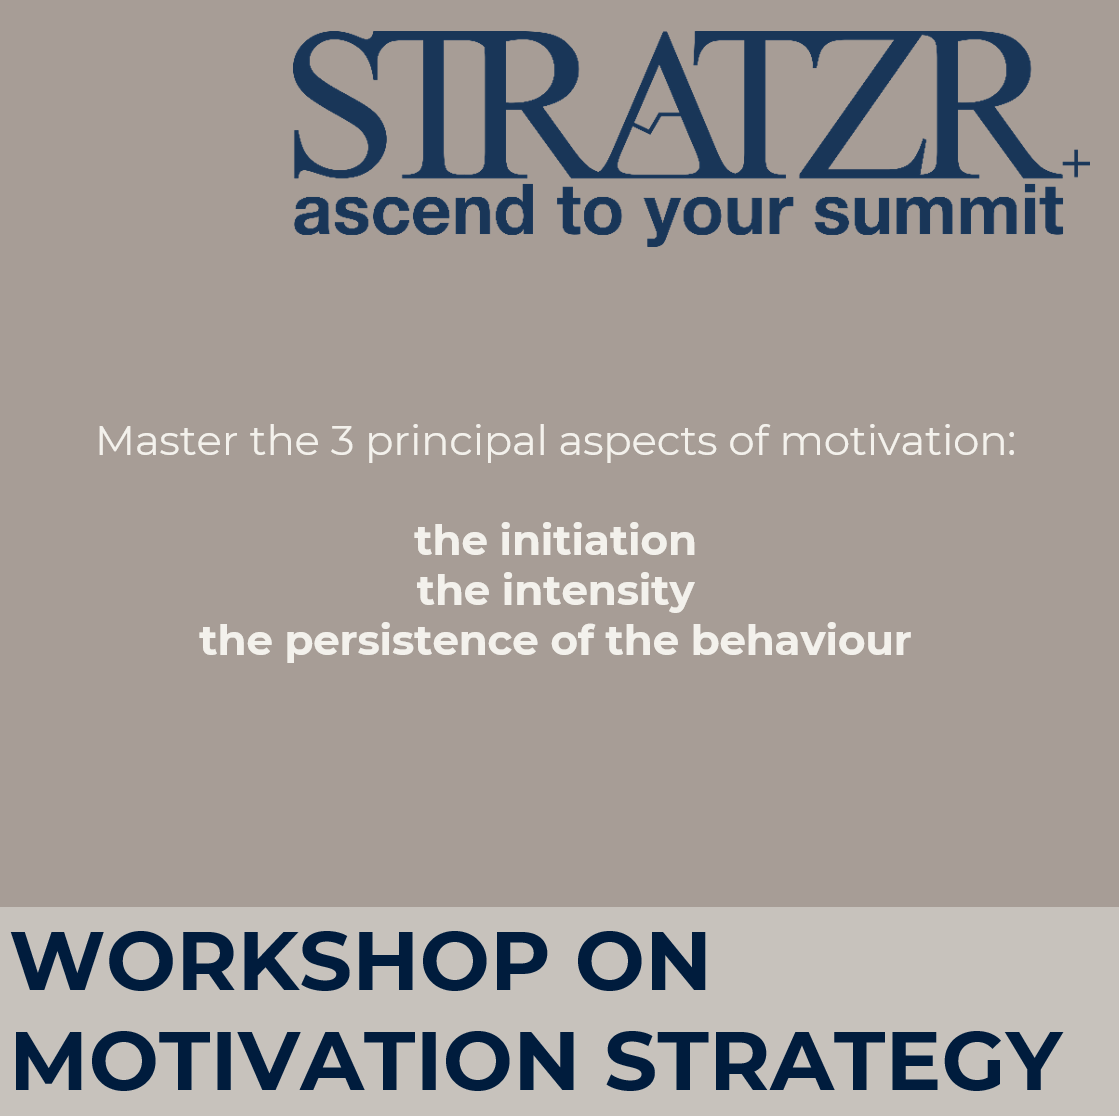 motivation strategies workshop laure freydefont by STRATZR.com leadership coaching and development